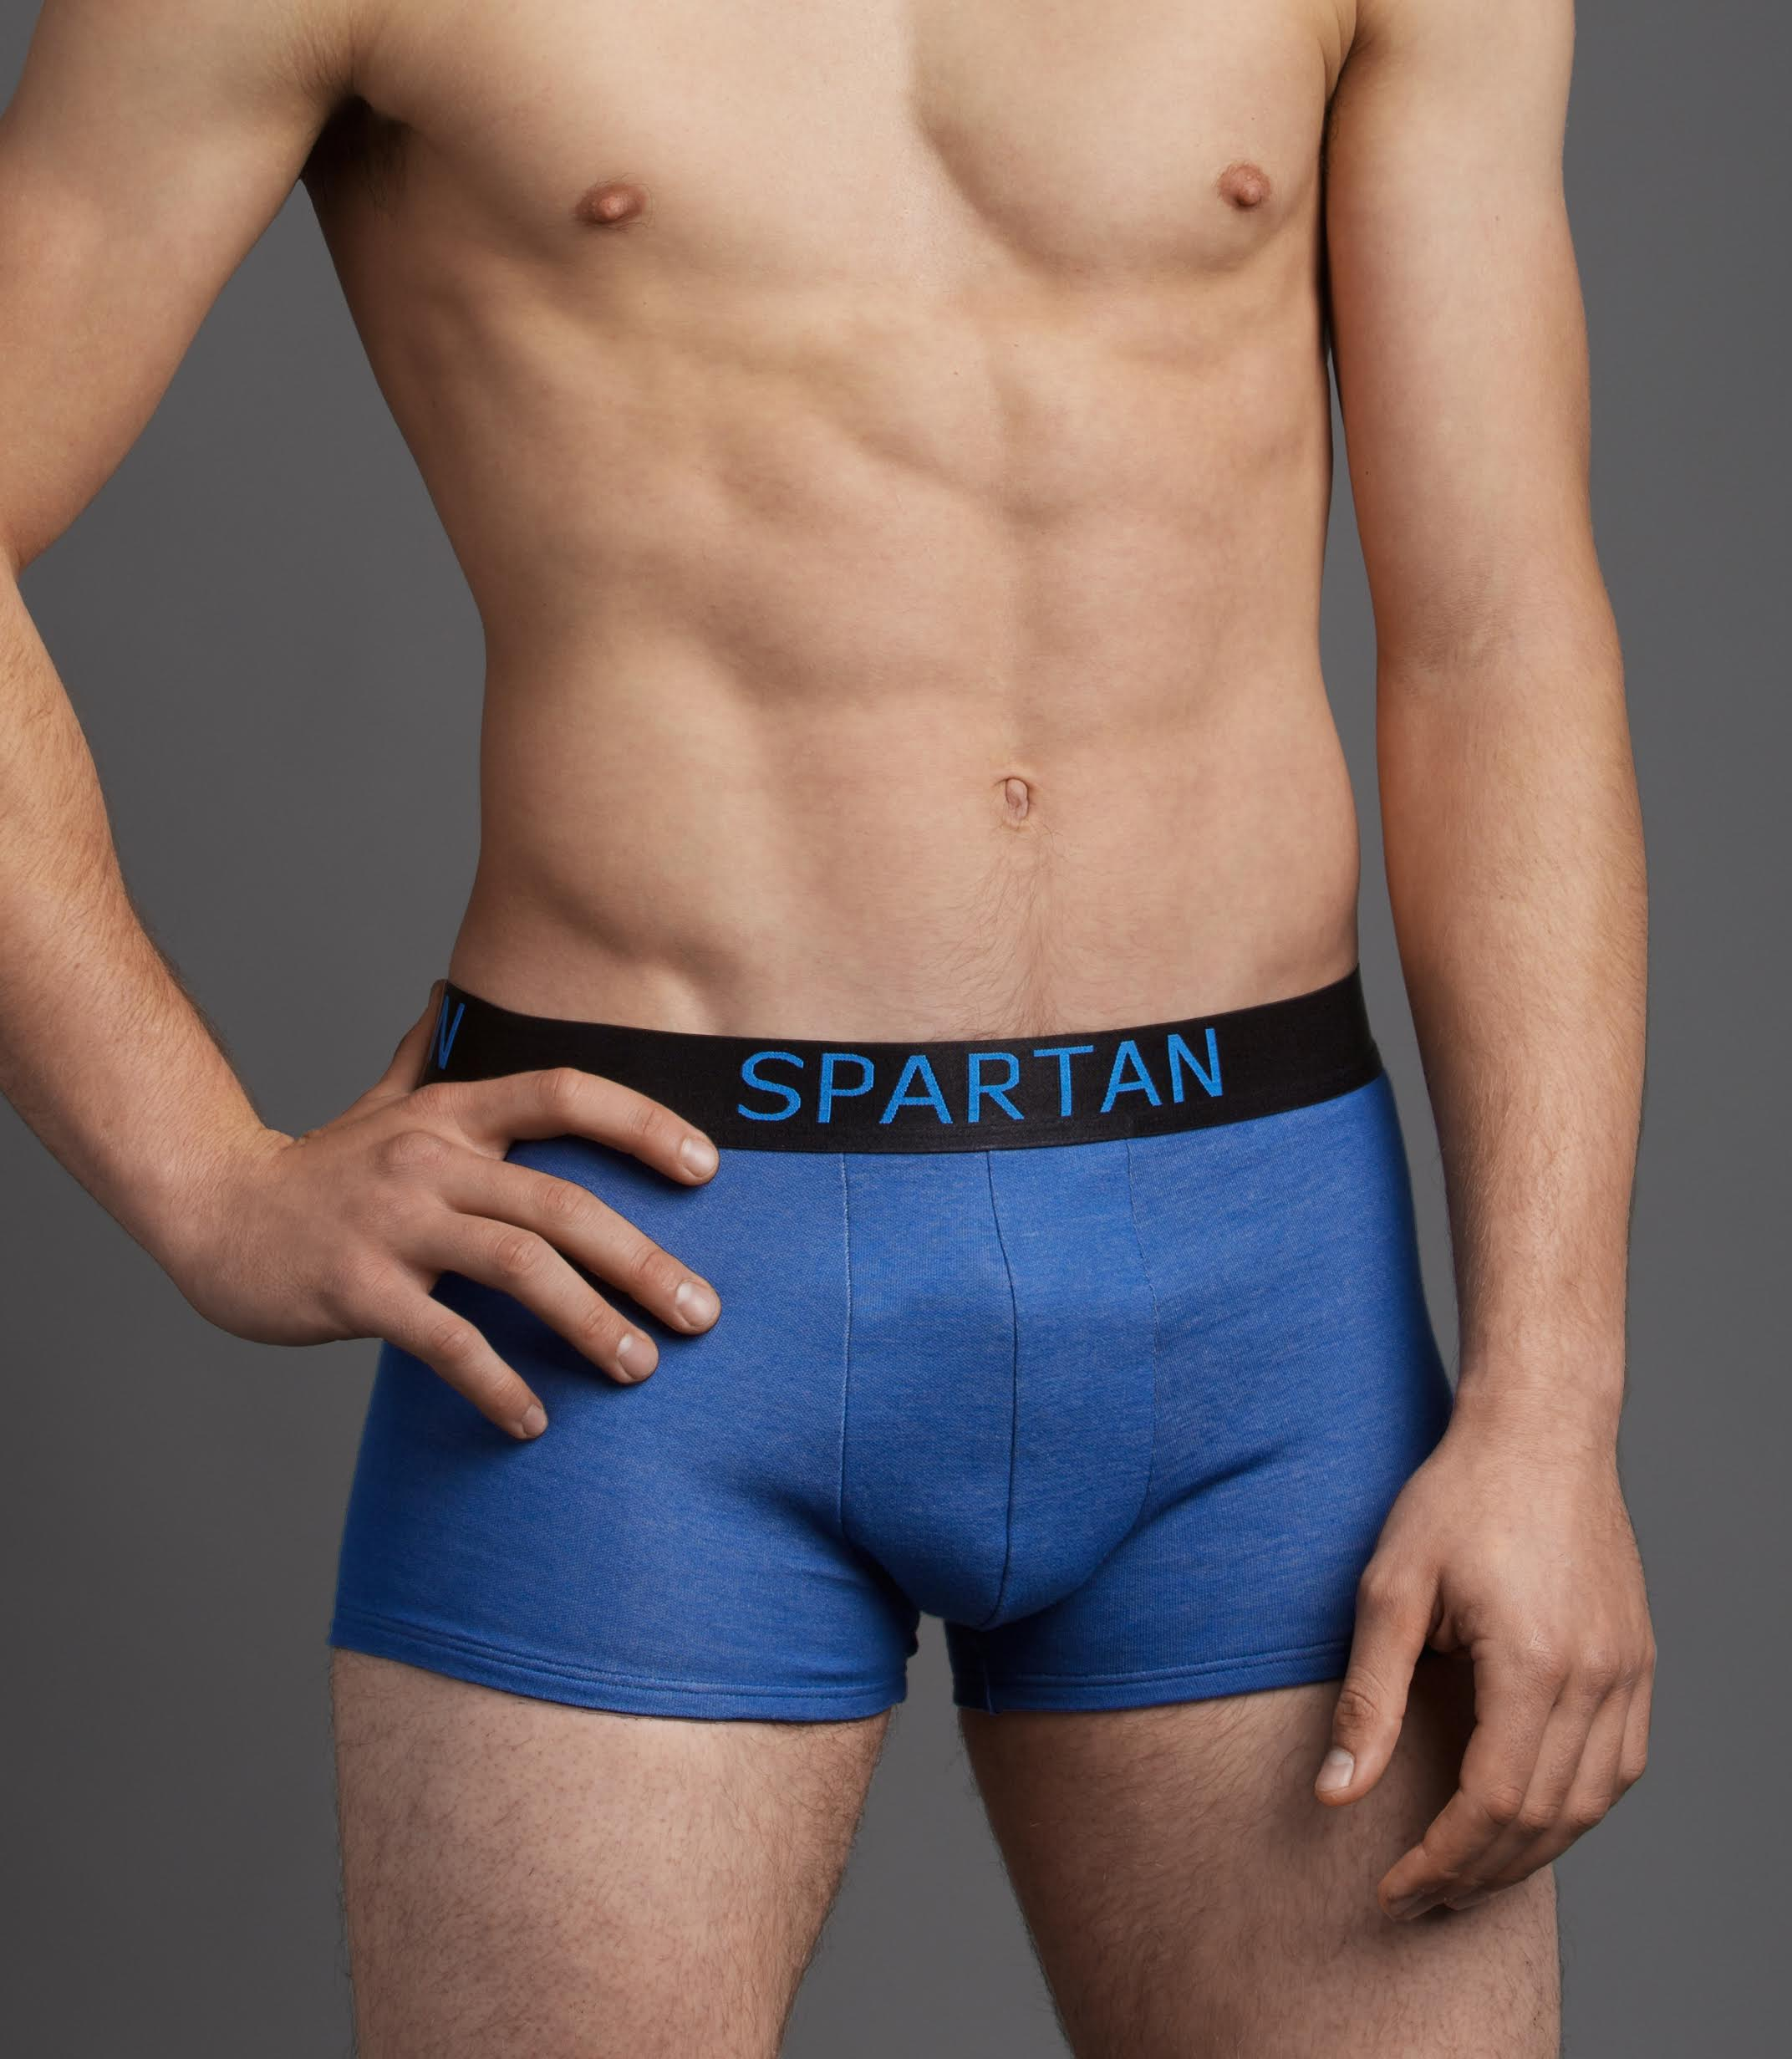 SPARTAN Boxer Briefs – Preventing Cancer &